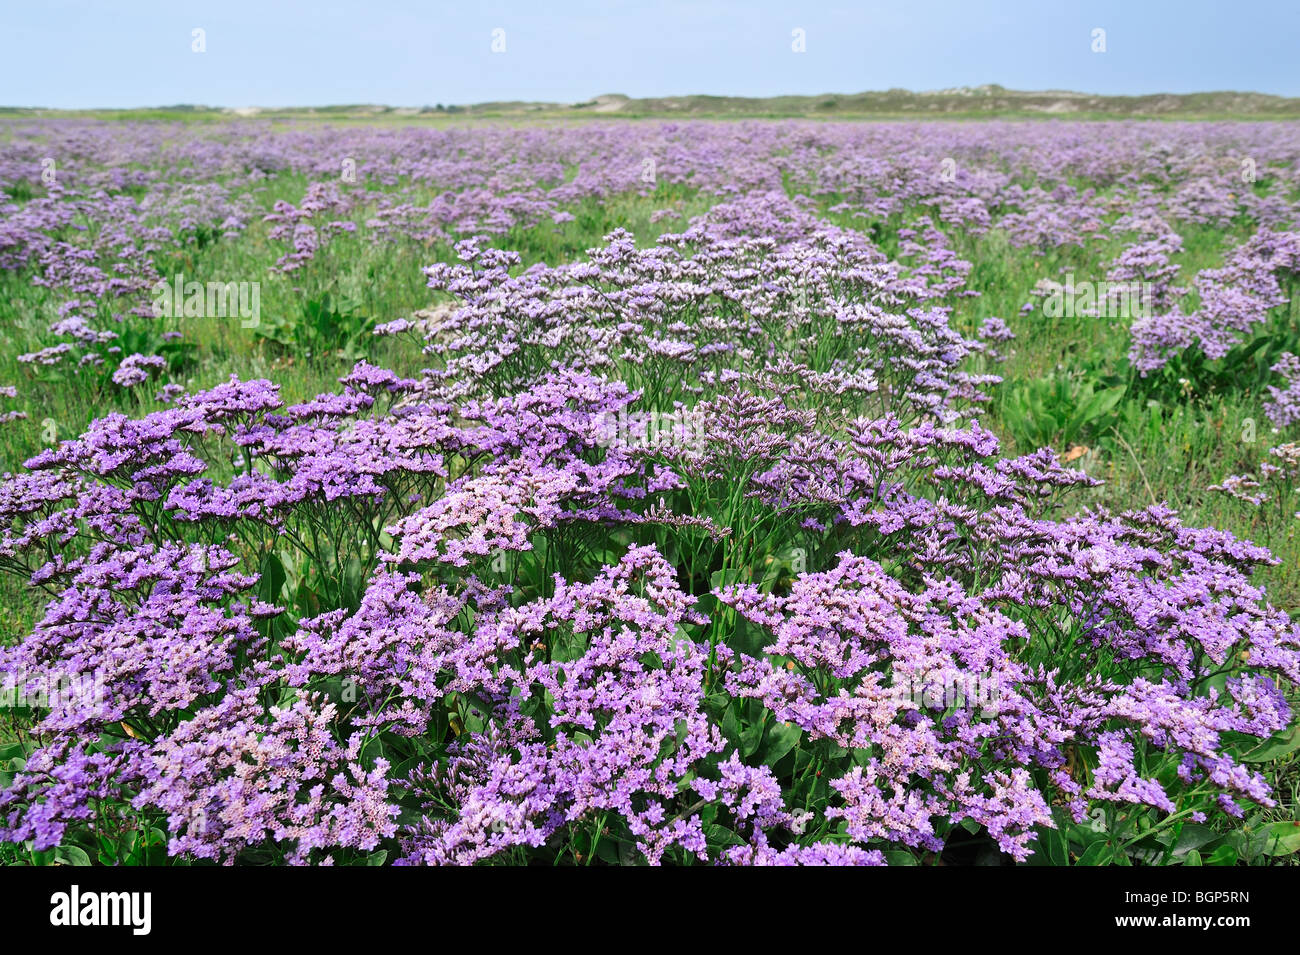 Sea lavender (Limonium vulgare) in flower in salt marsh along the North Sea - Stock Image